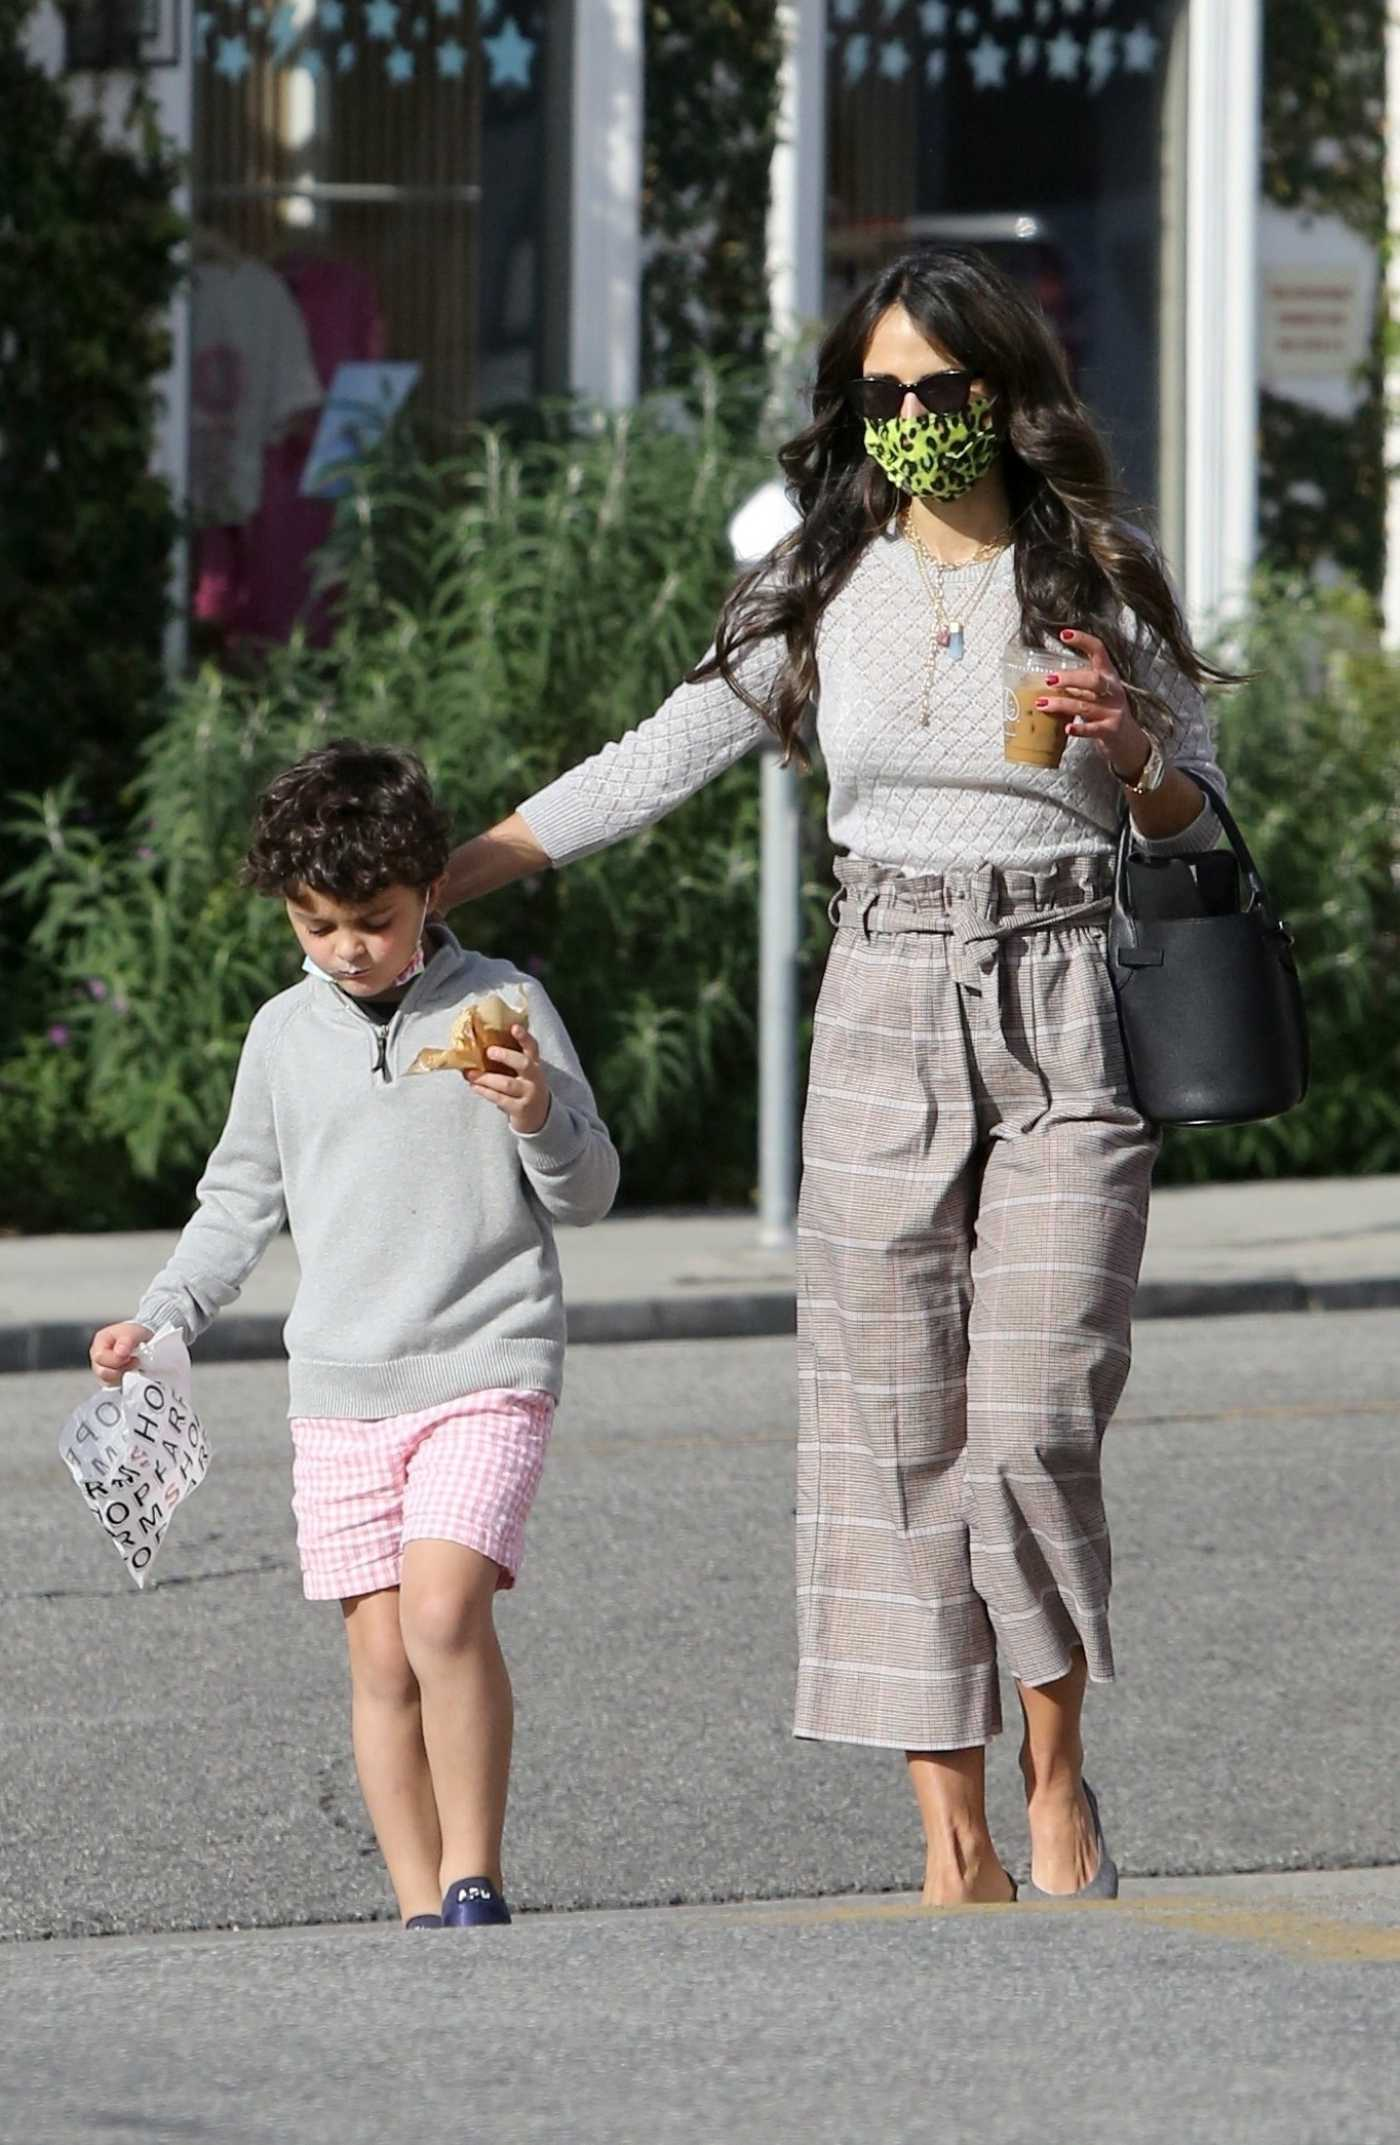 Jordana Brewster in a Beige Outfit Was Seen Out with Her Son in Los Angeles 02/16/2021